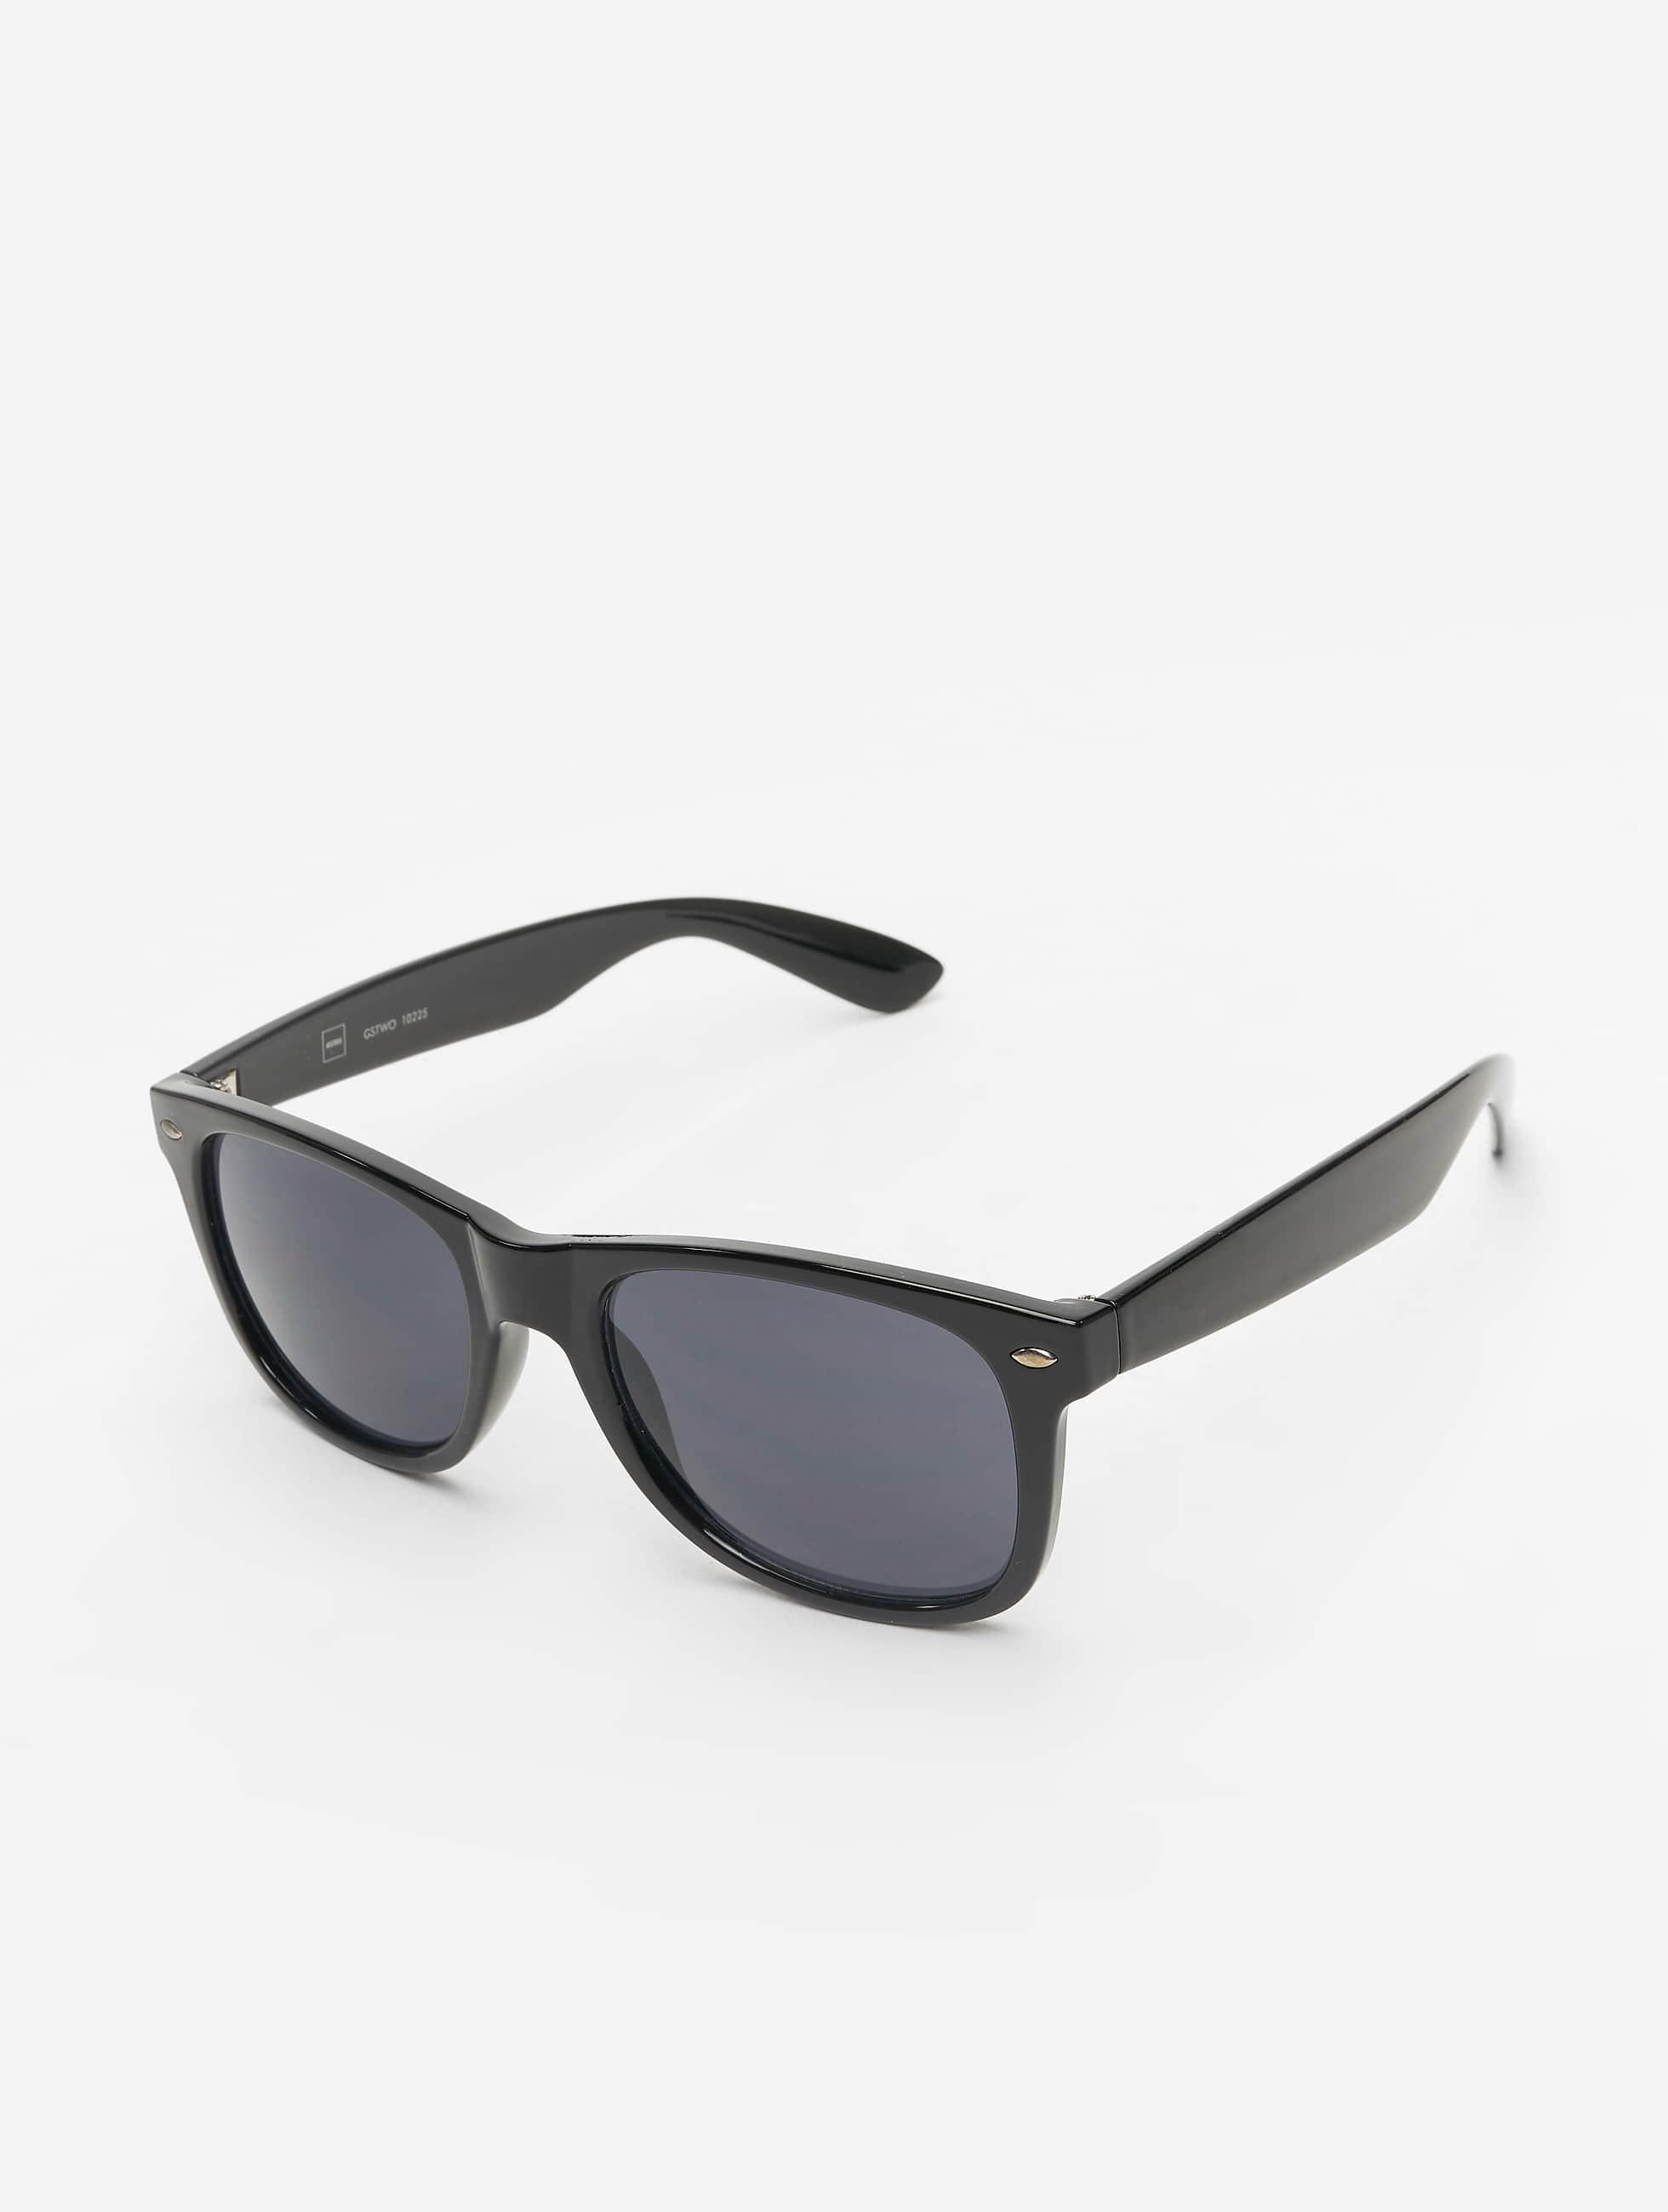 MSTRDS Zonnebril Groove Shades GStwo zwart